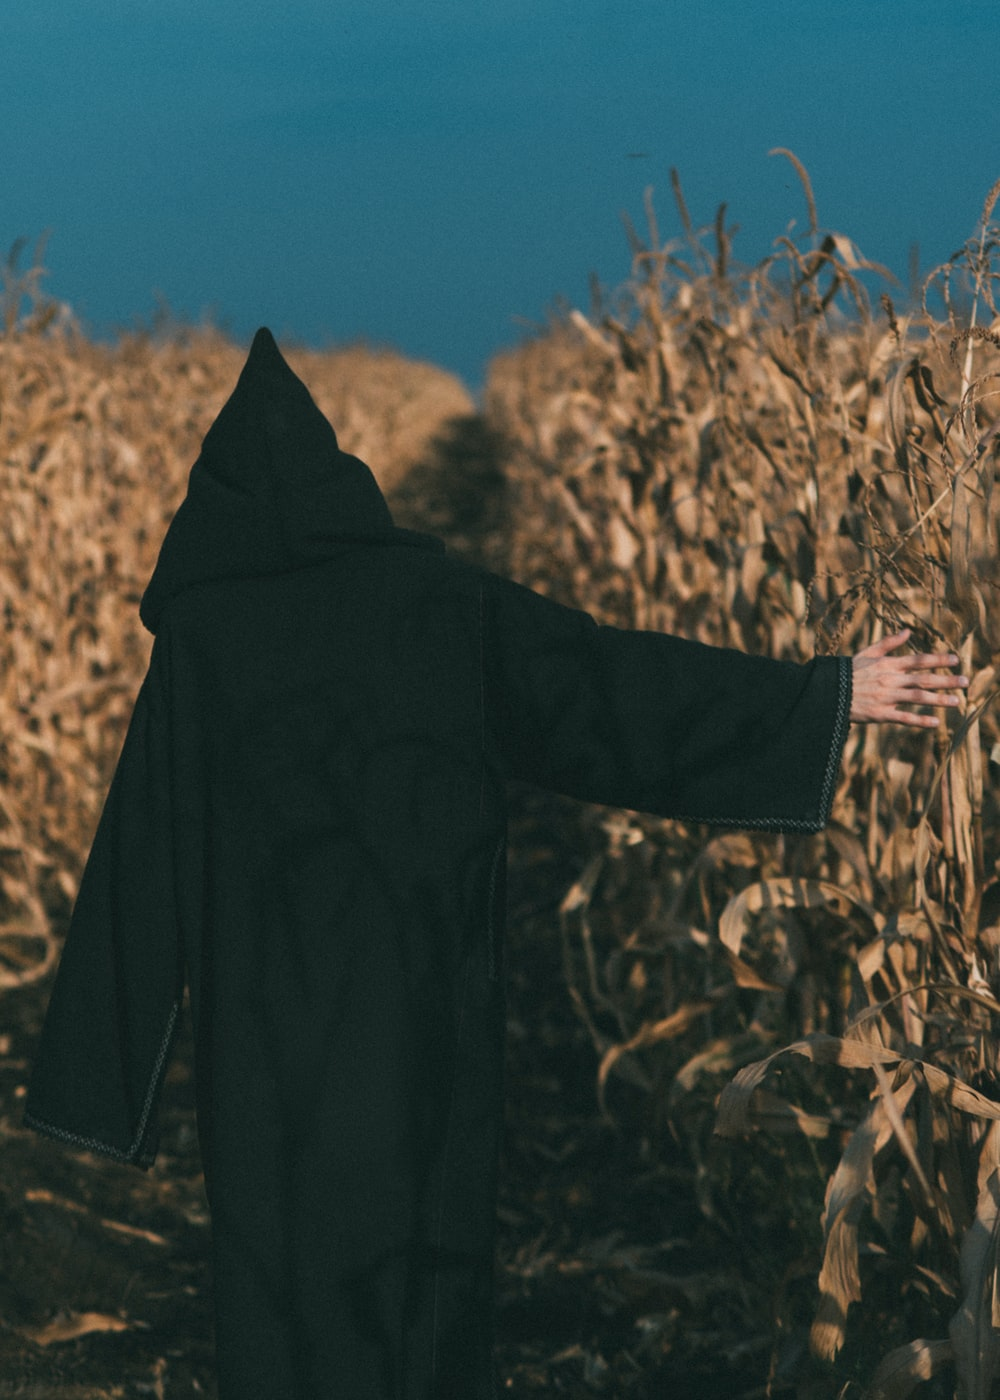 person wearing black coat standing in corn field during daytime